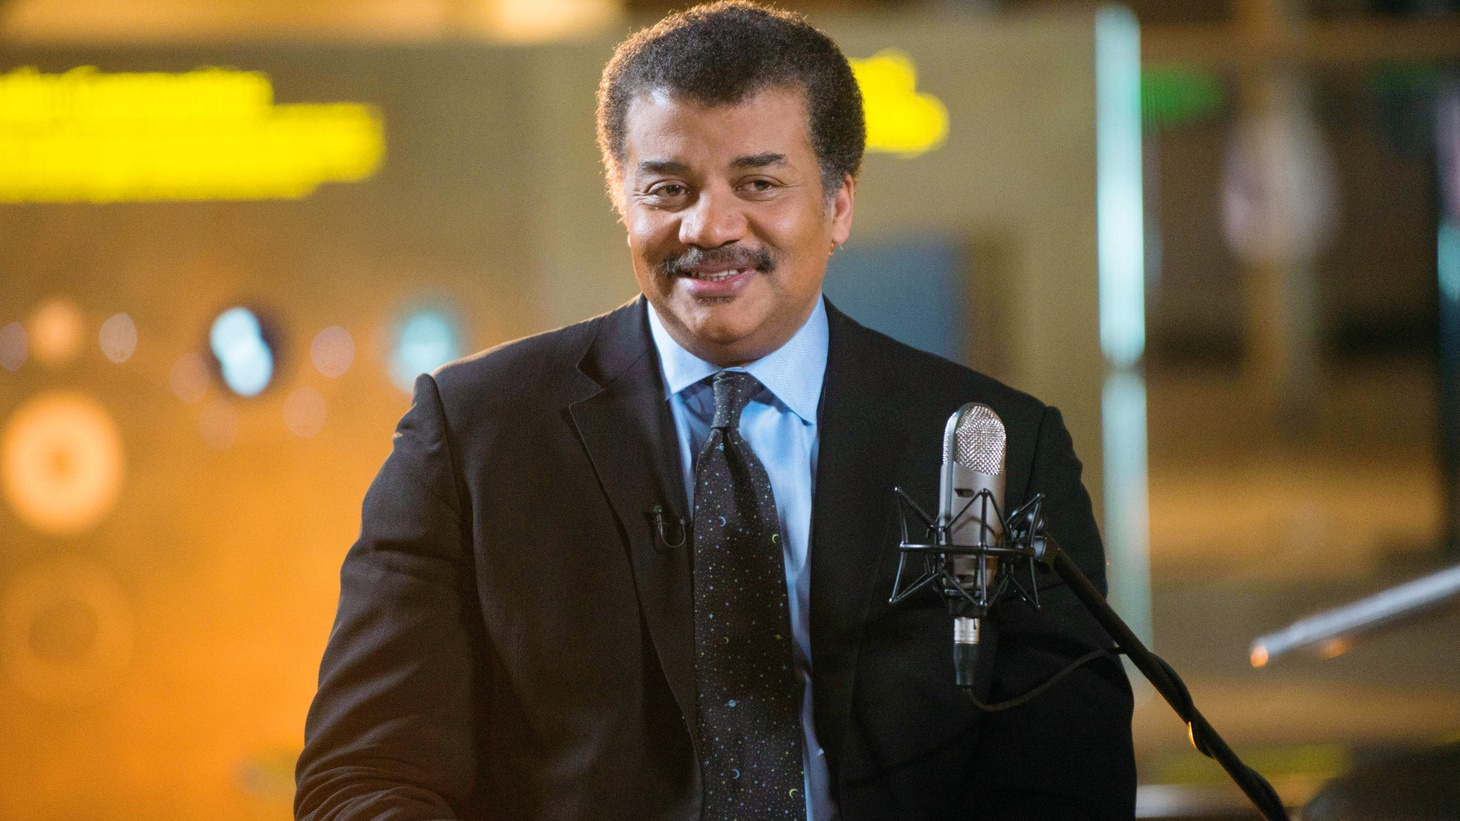 Dr. Neil deGrasse Tyson is an author, astrophysicist, and Director of The Hayden Planetarium at The American Museum of Natural History. He names blues as his favorite genre, but his song picks are mostly a celebration of life – from a gospel classic to a Van Morrison love song and a prog rock hit with an interesting twist.